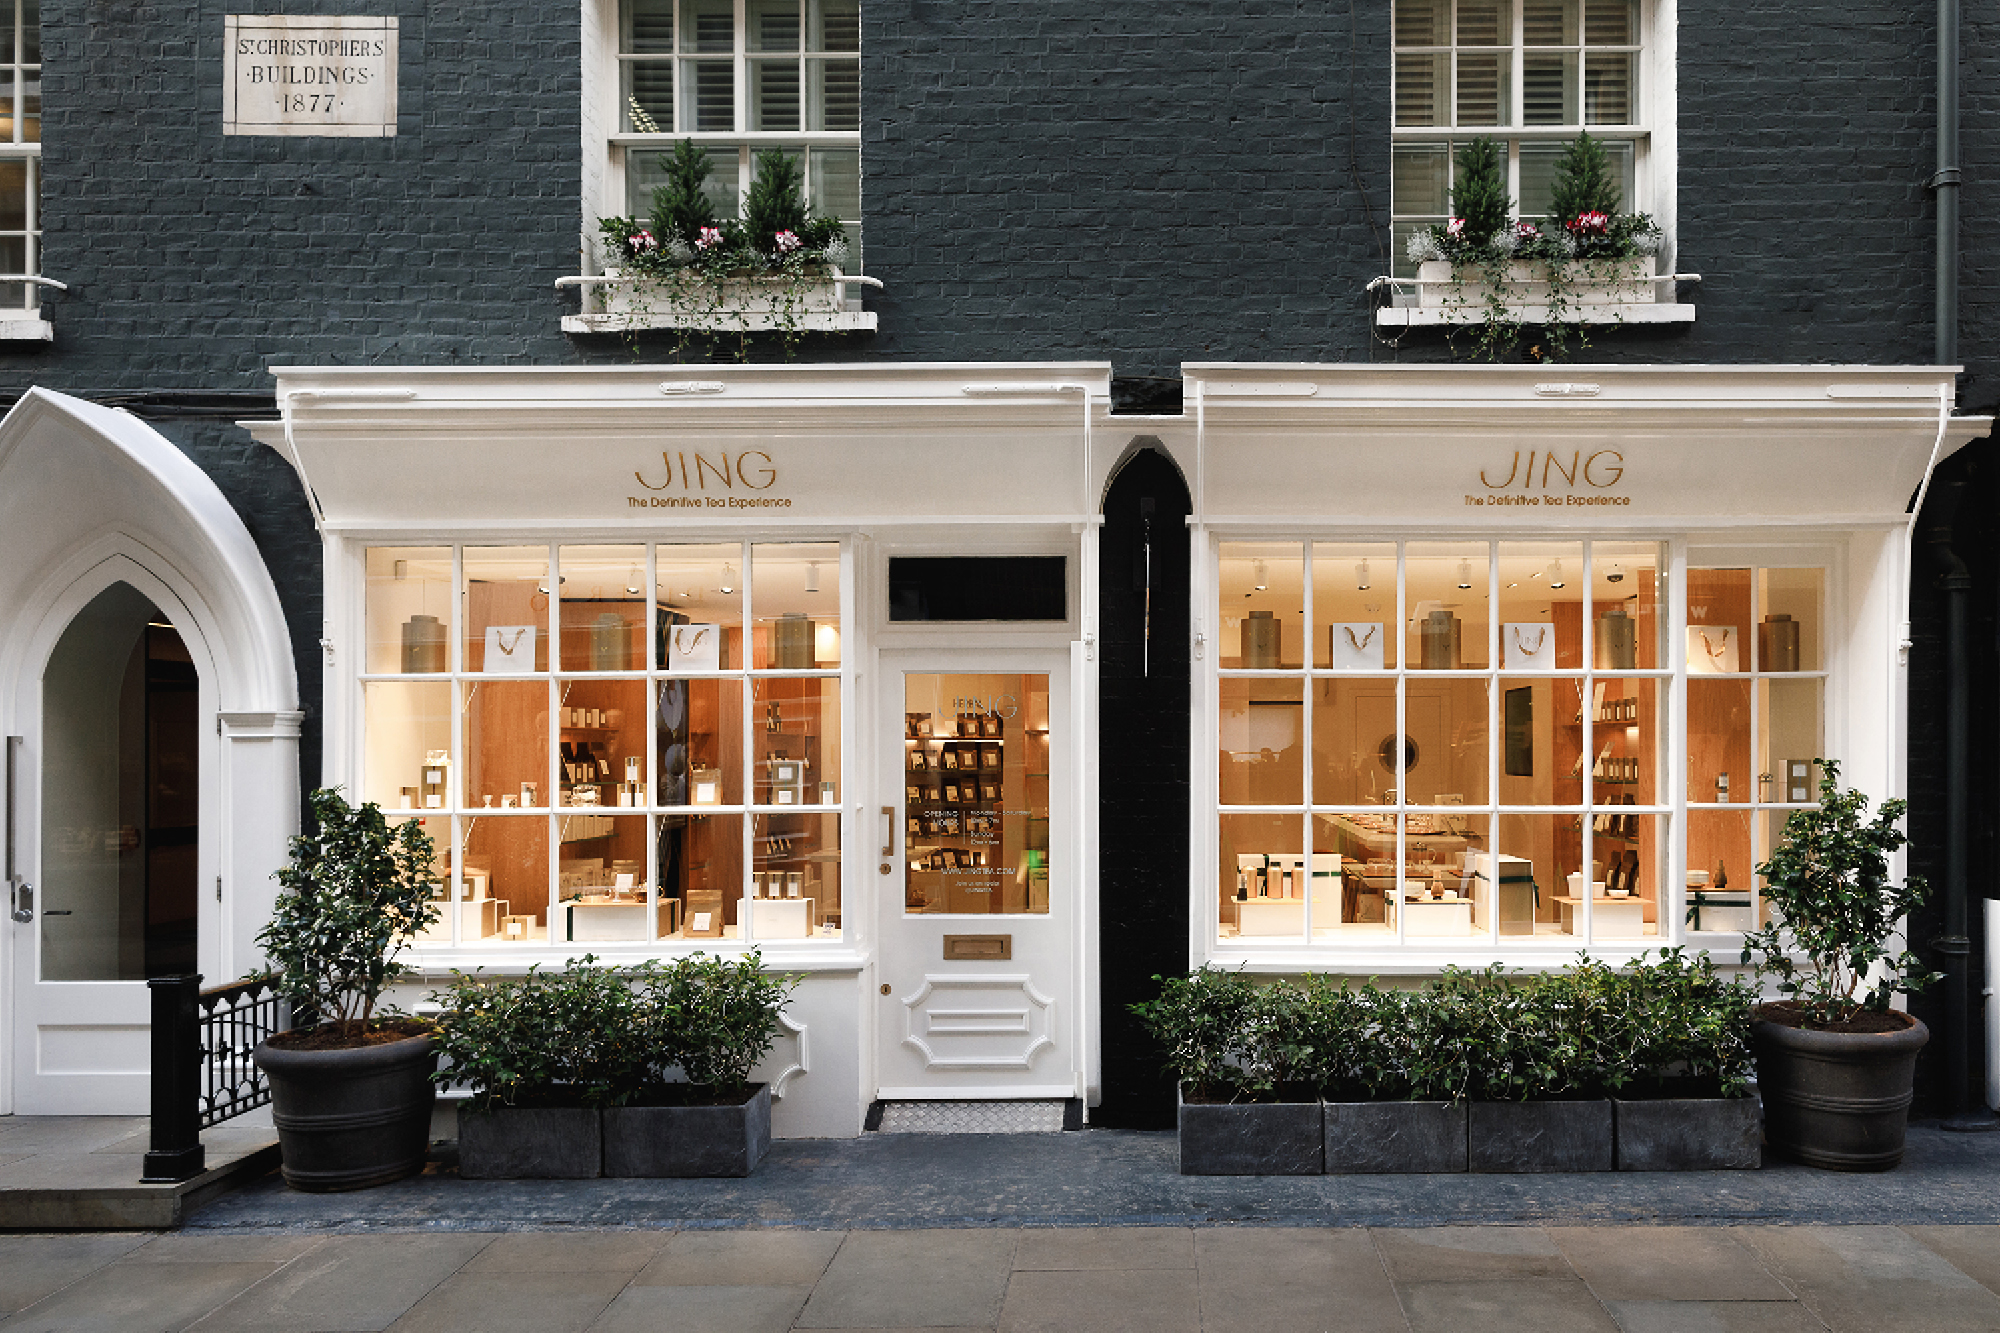 The Jing Tea boutique at St Christopher's Place, London